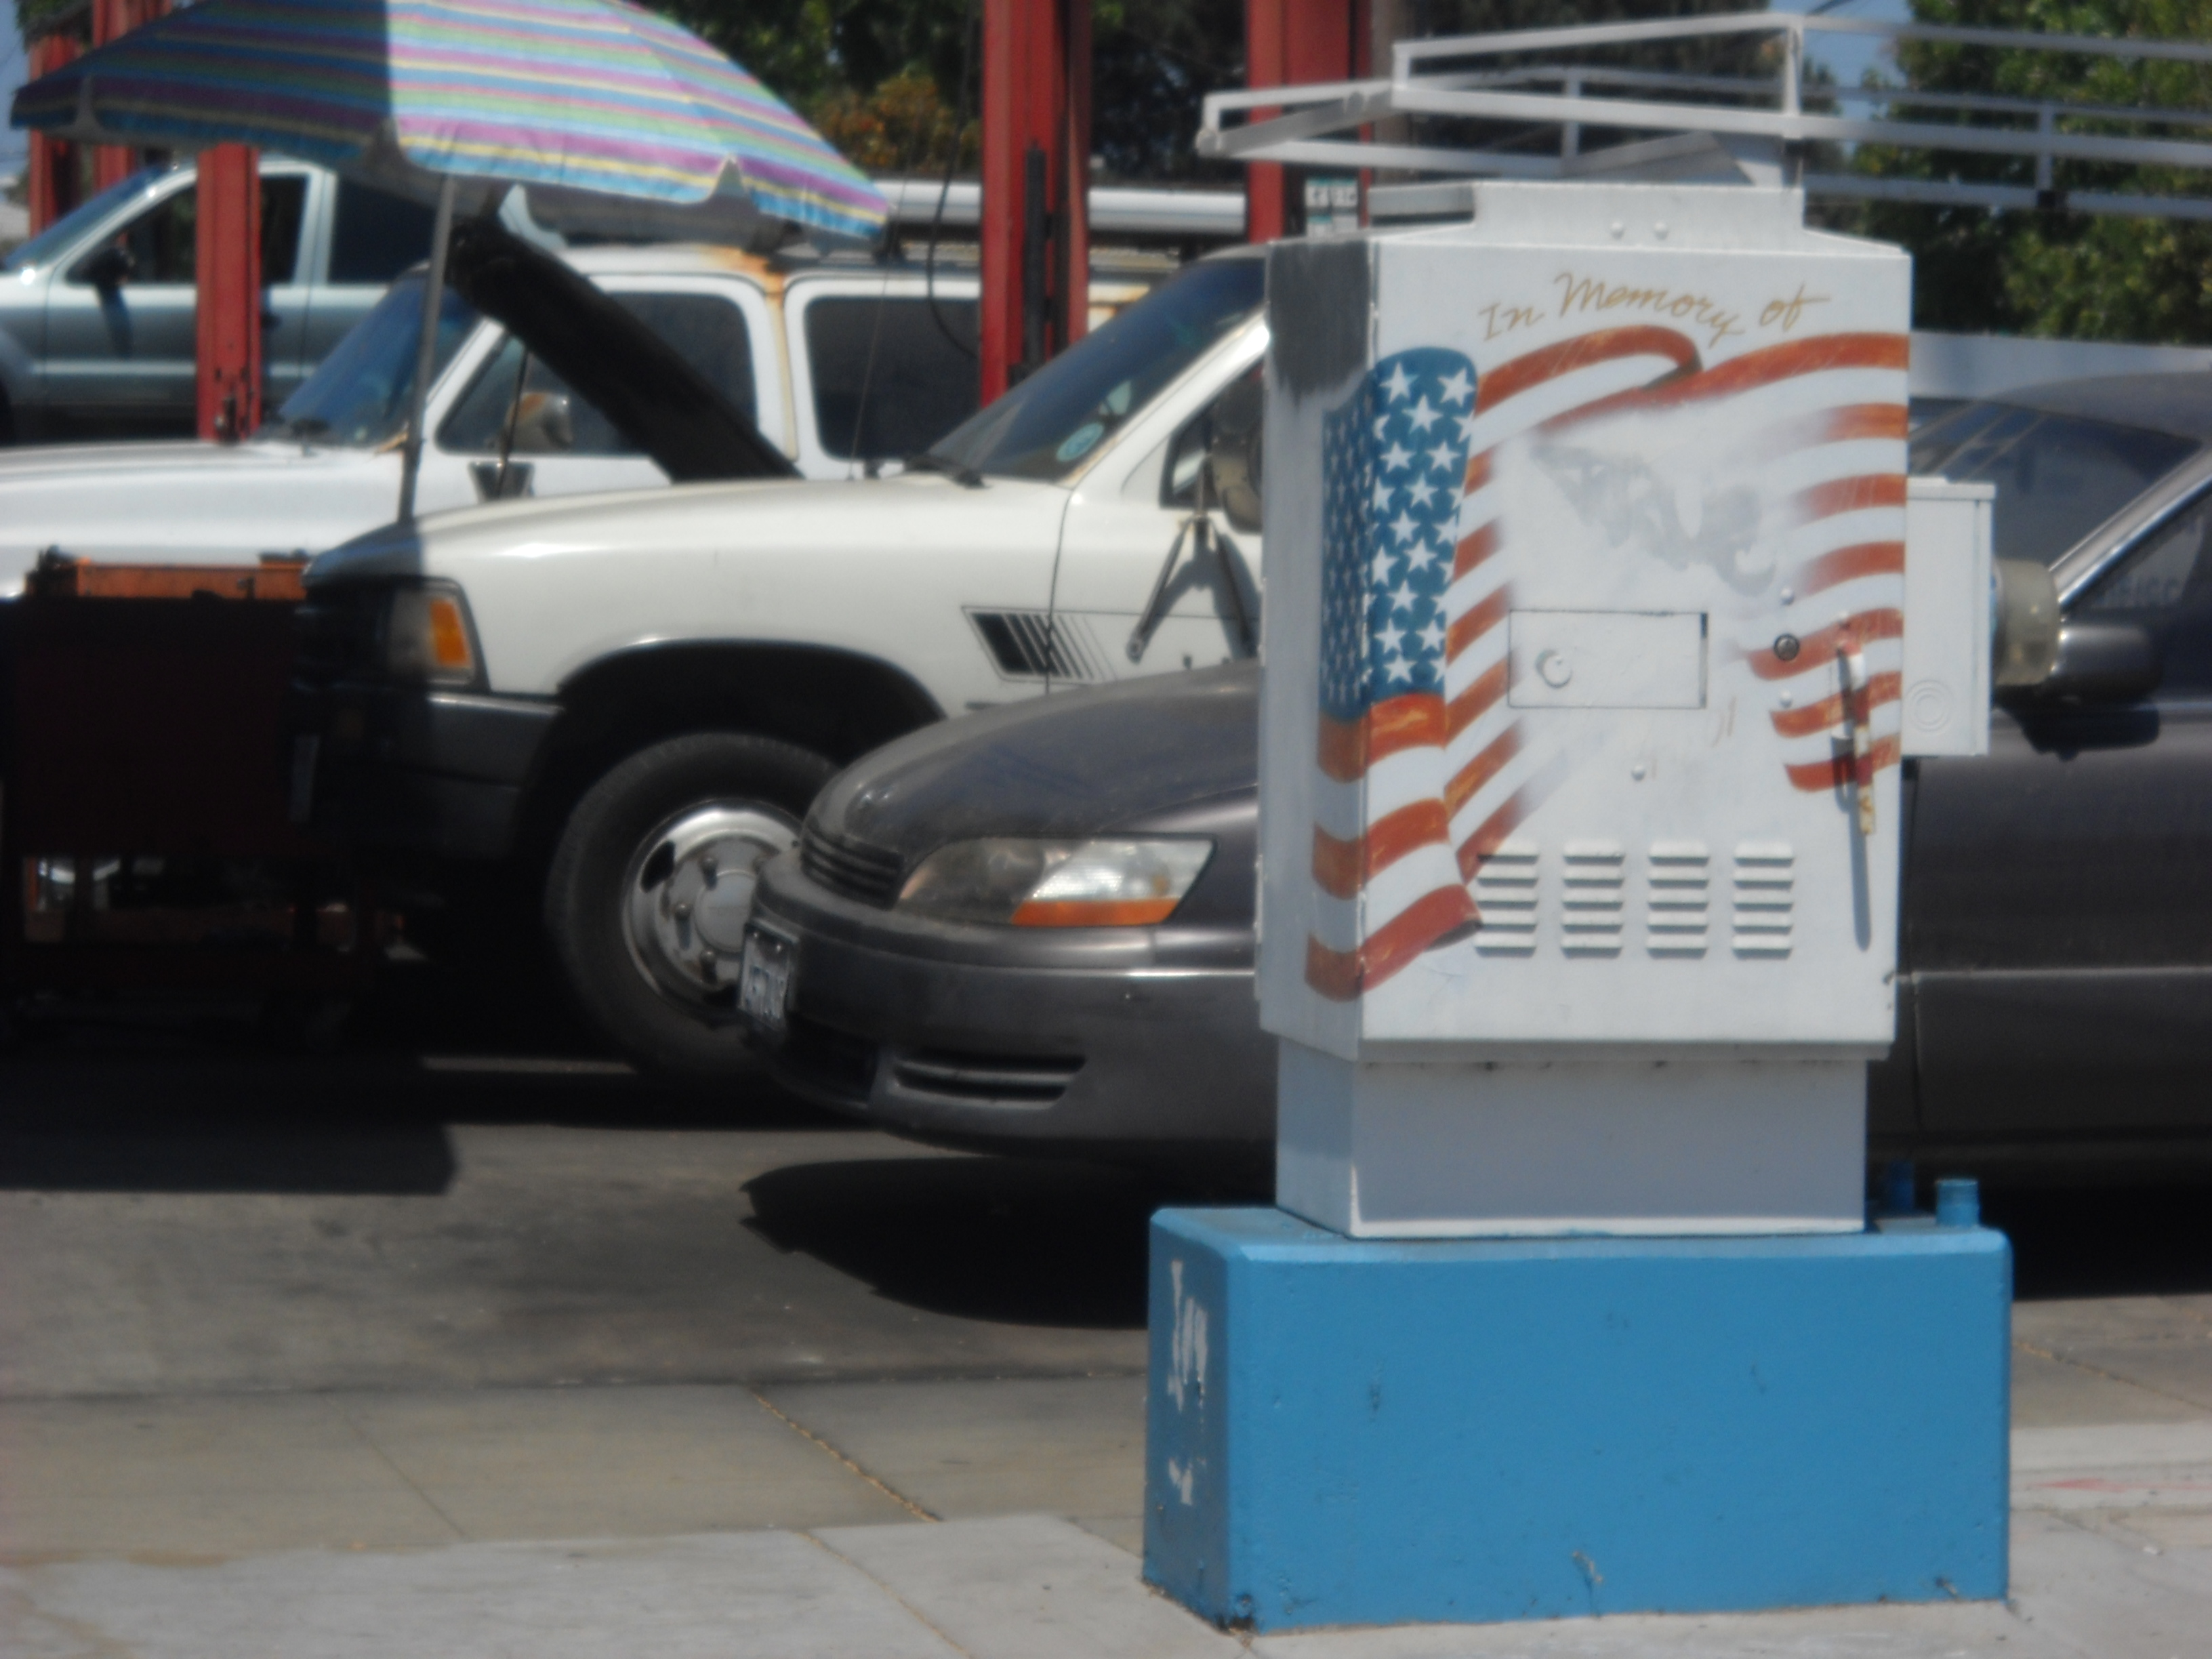 Patriotic utility box art on the corner of Ebers and Voltaire Streets in Ocean Beach.